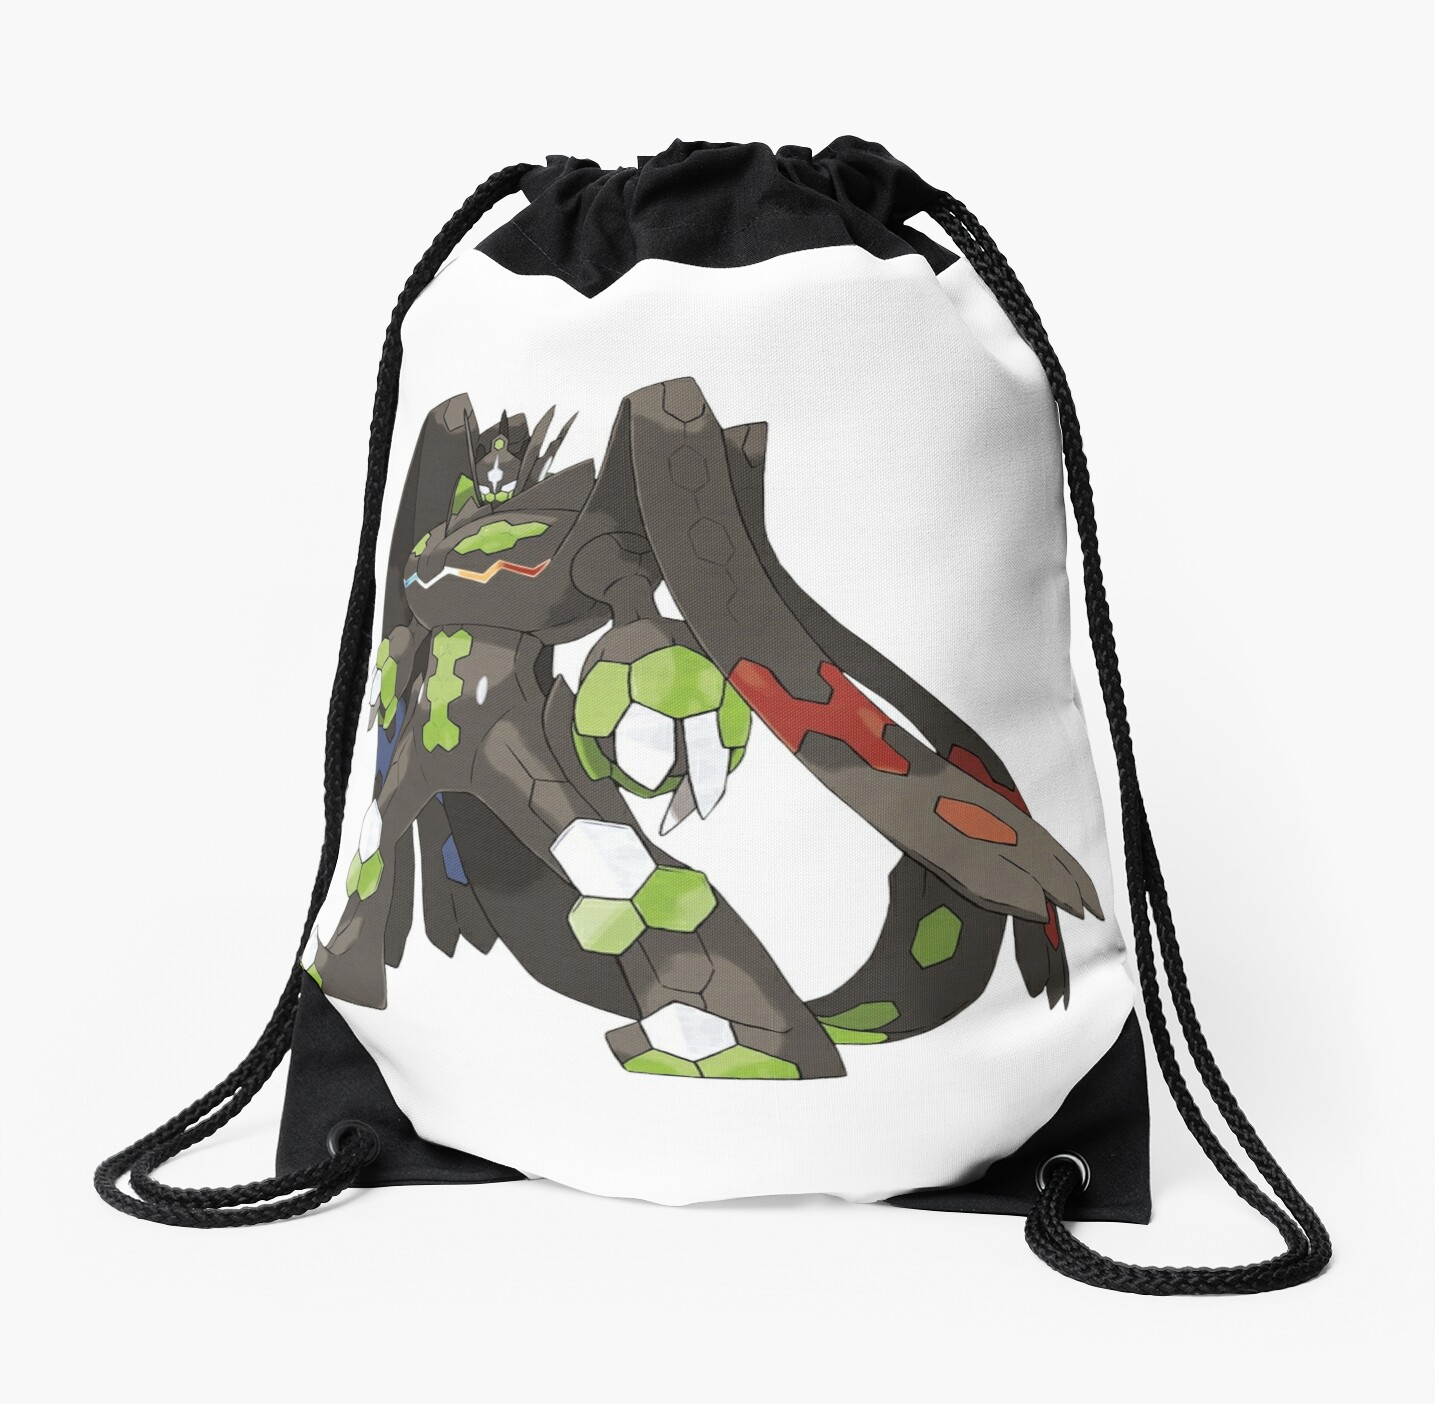 zygarde 100 form drawstring bags by chopping redbubble